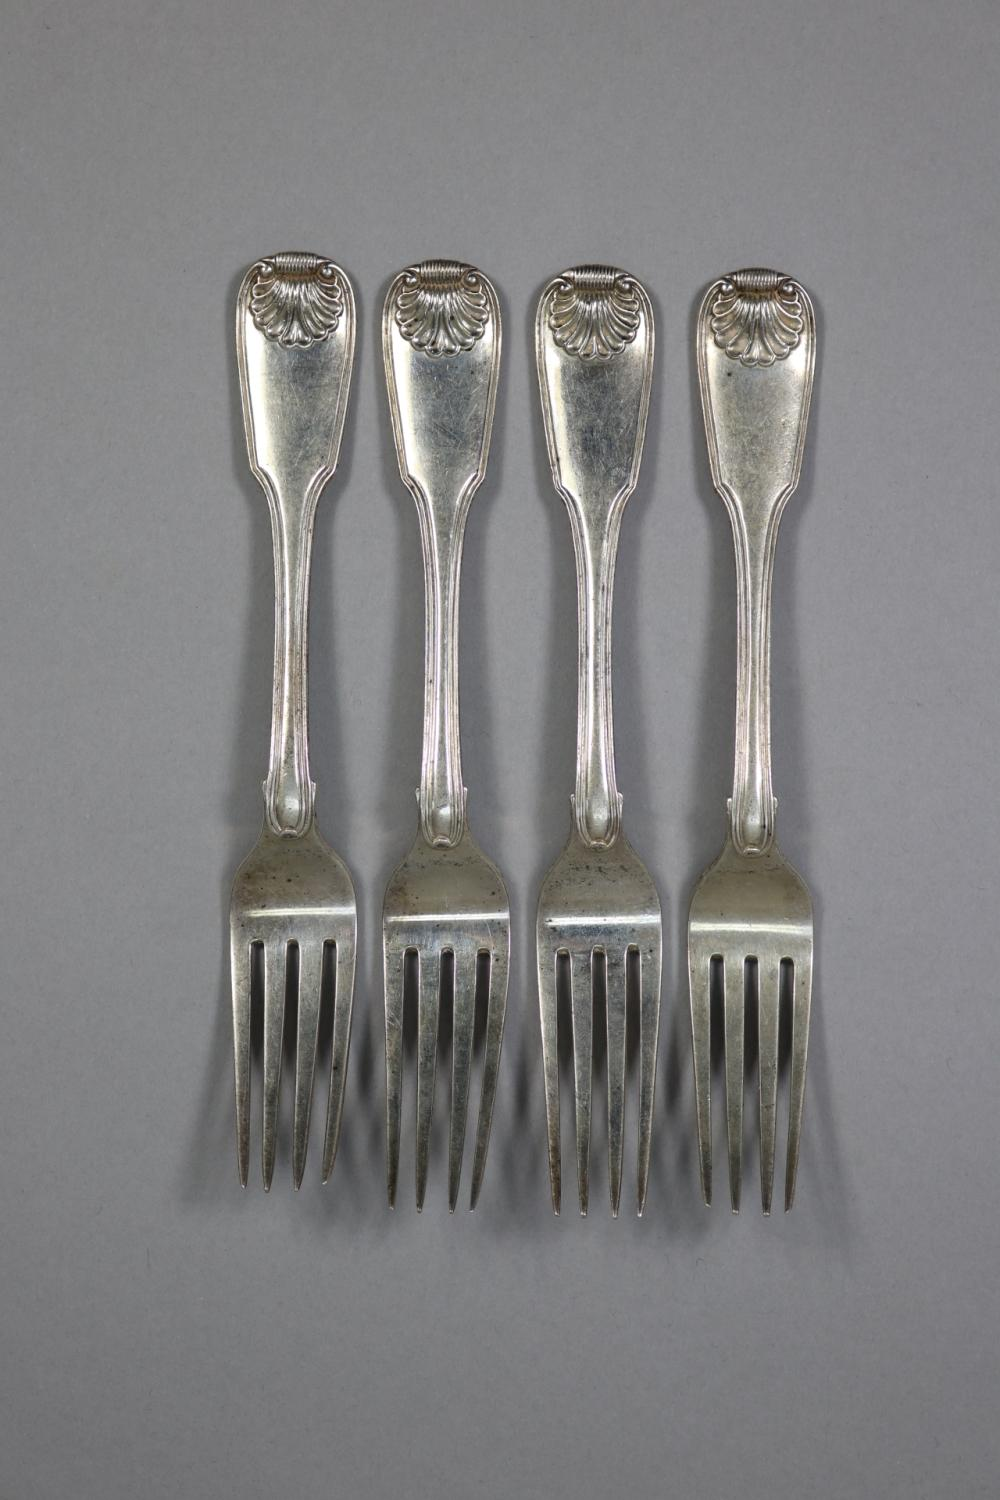 Set of four hallmarked sterling silver Fiddle, Thread and Shell pattern forks, London, 1822 - 1823, by William Chawner, approx 400 grams (4)